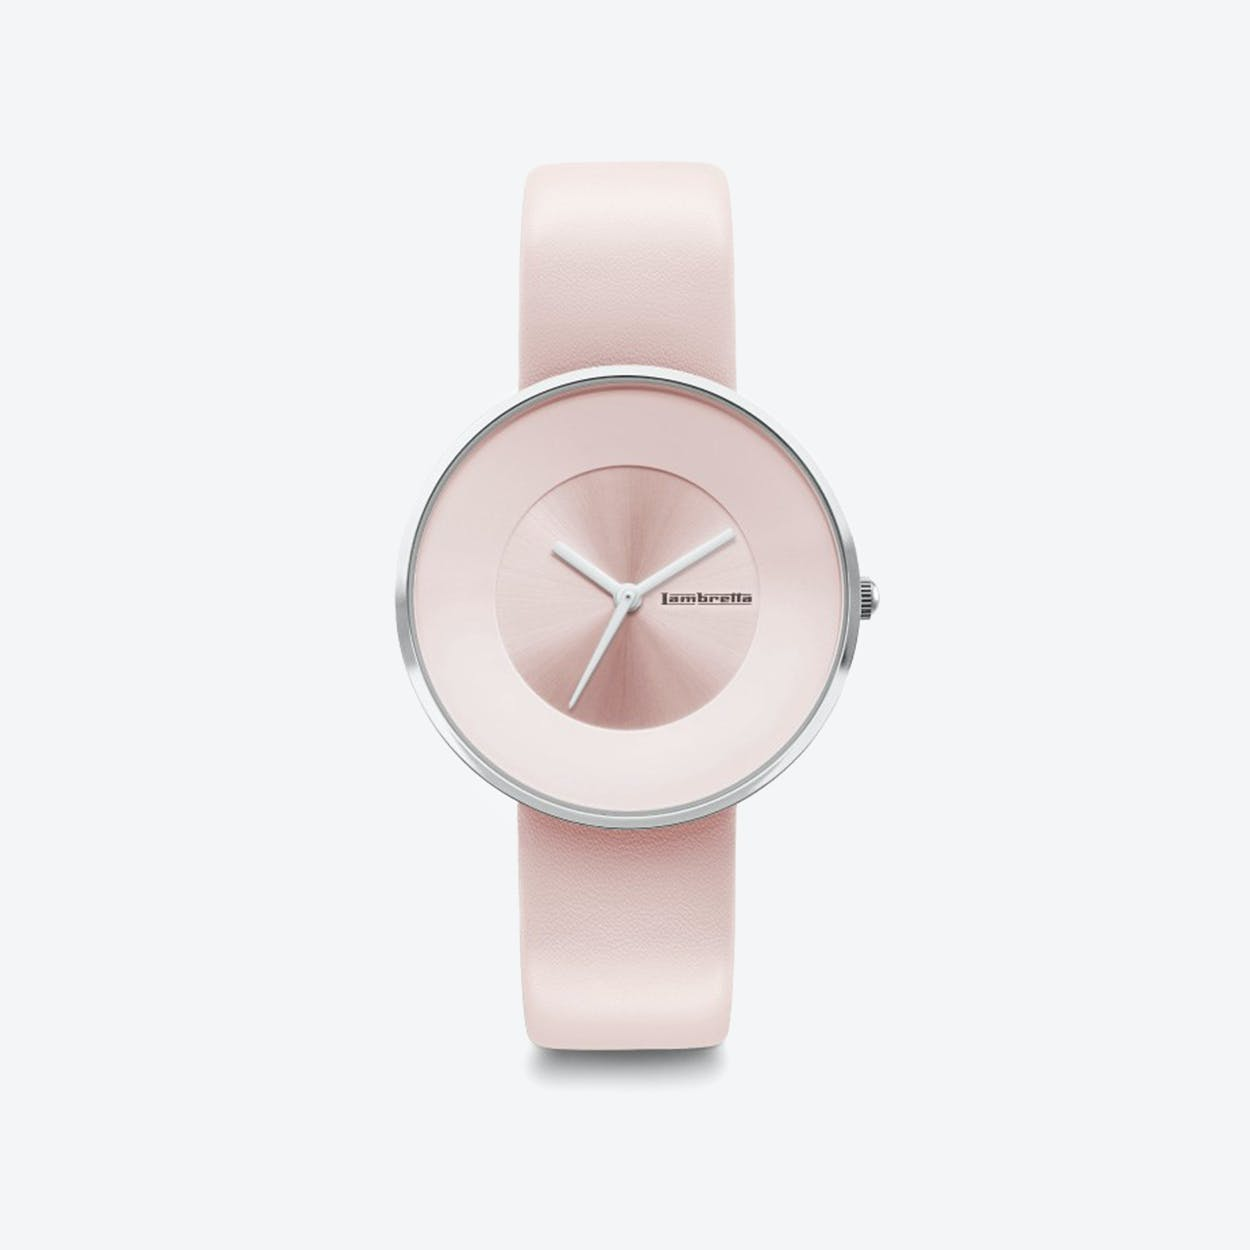 Cielo in All Pink, 34mm